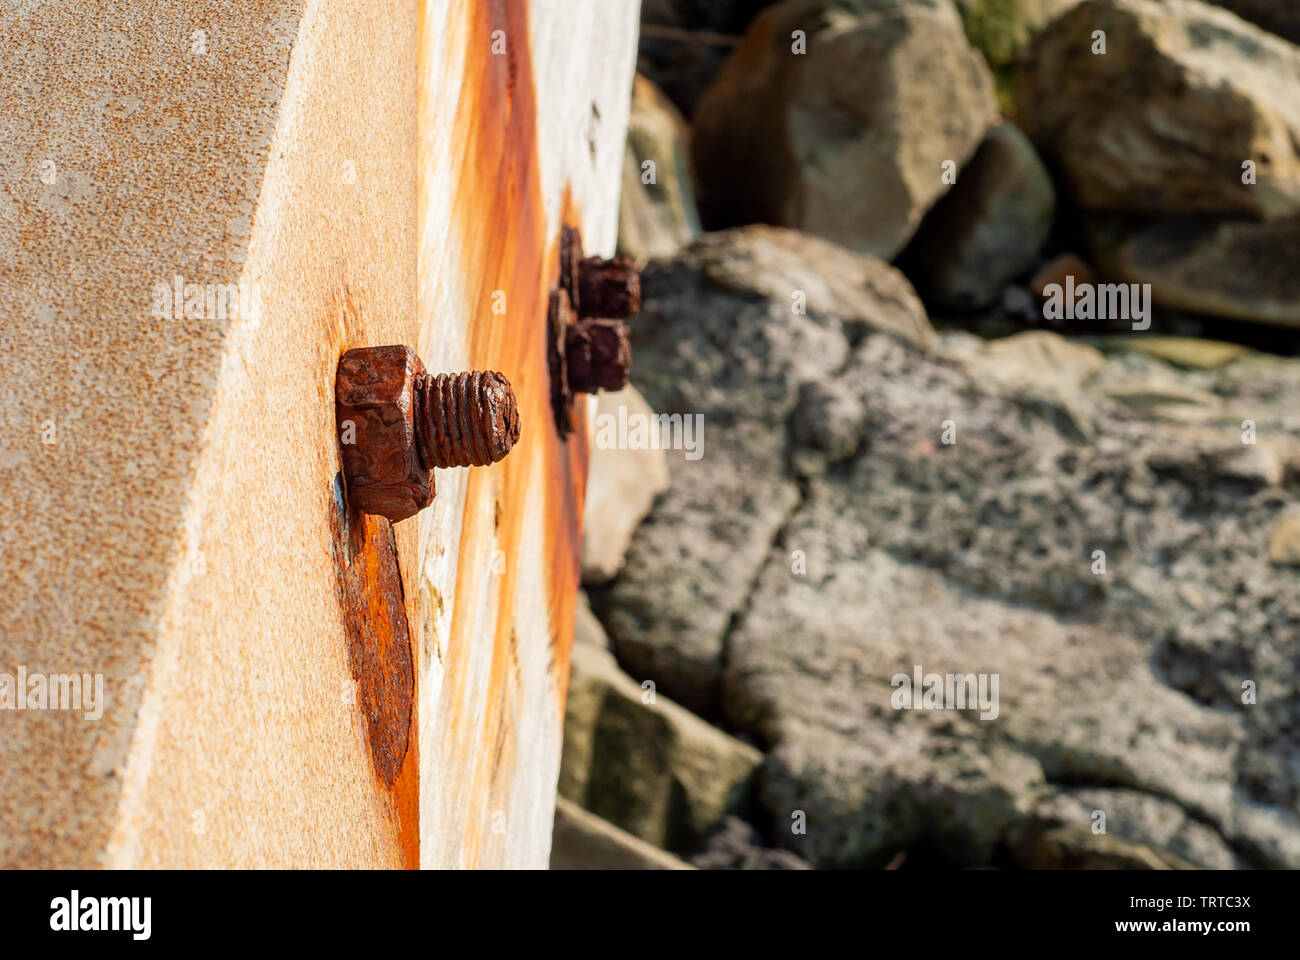 Pin rusted from salt water, taken on the bridge of the Massa Lubrense seafront, near Sorrento - Stock Image